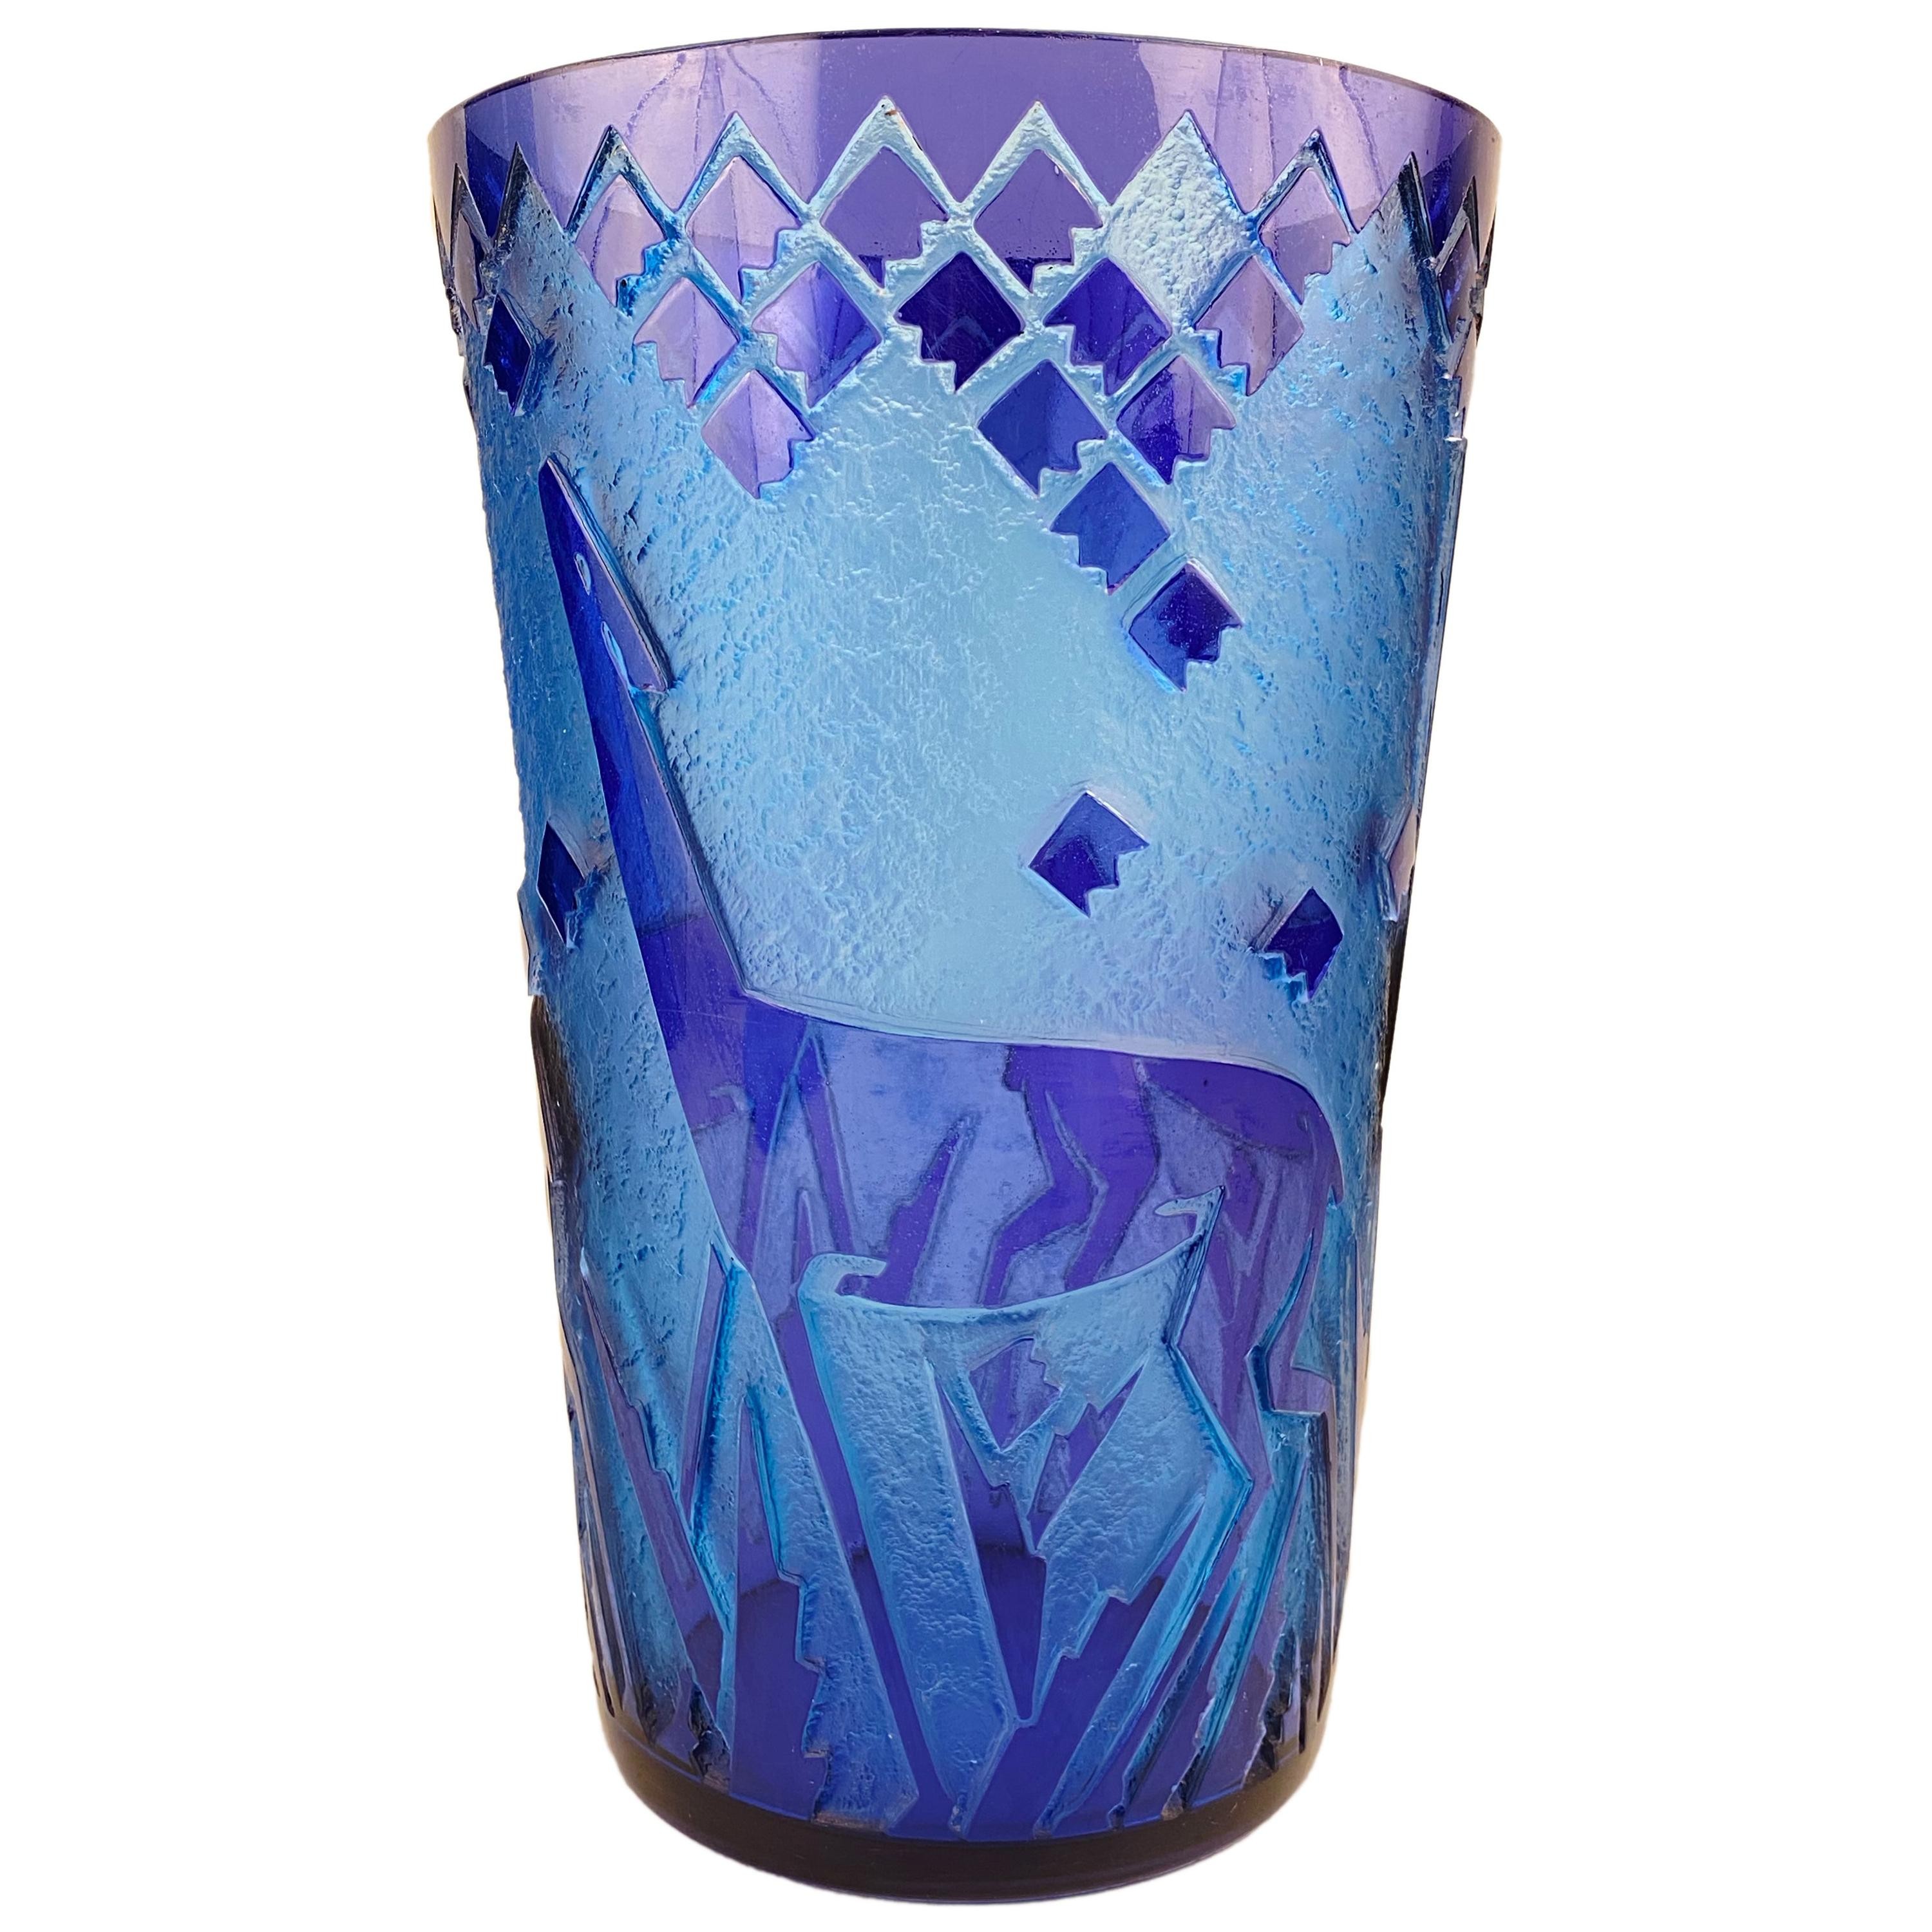 """Rare and Monumental French Art Deco Acid-Etched """"Fawn"""" Vase by, Daum Nancy"""